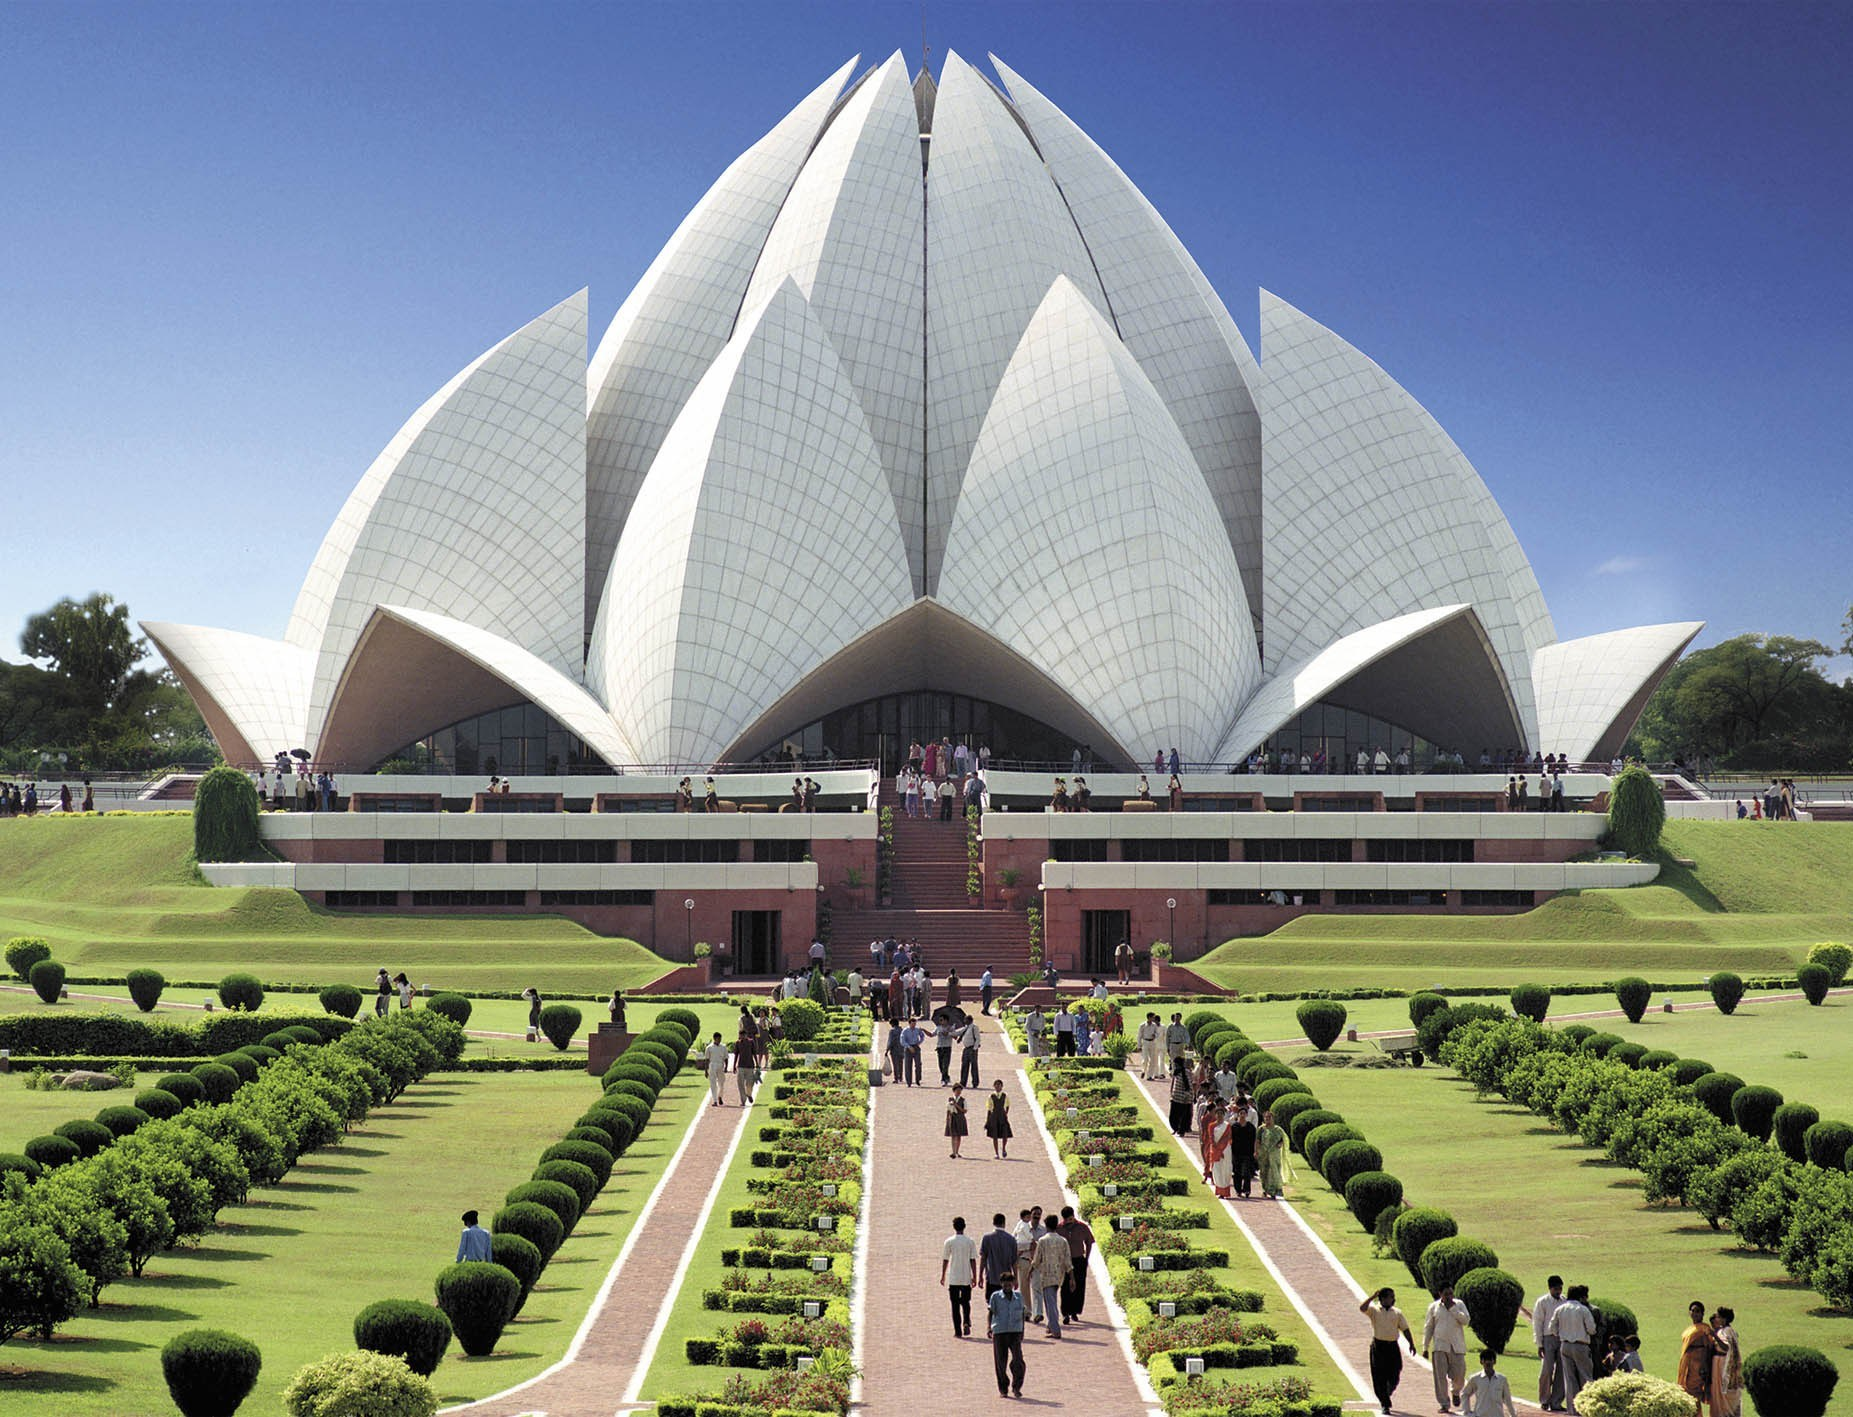 Http://listverse.com/2012/11/23/top 10 Stunning Religious Buildings  In Images/